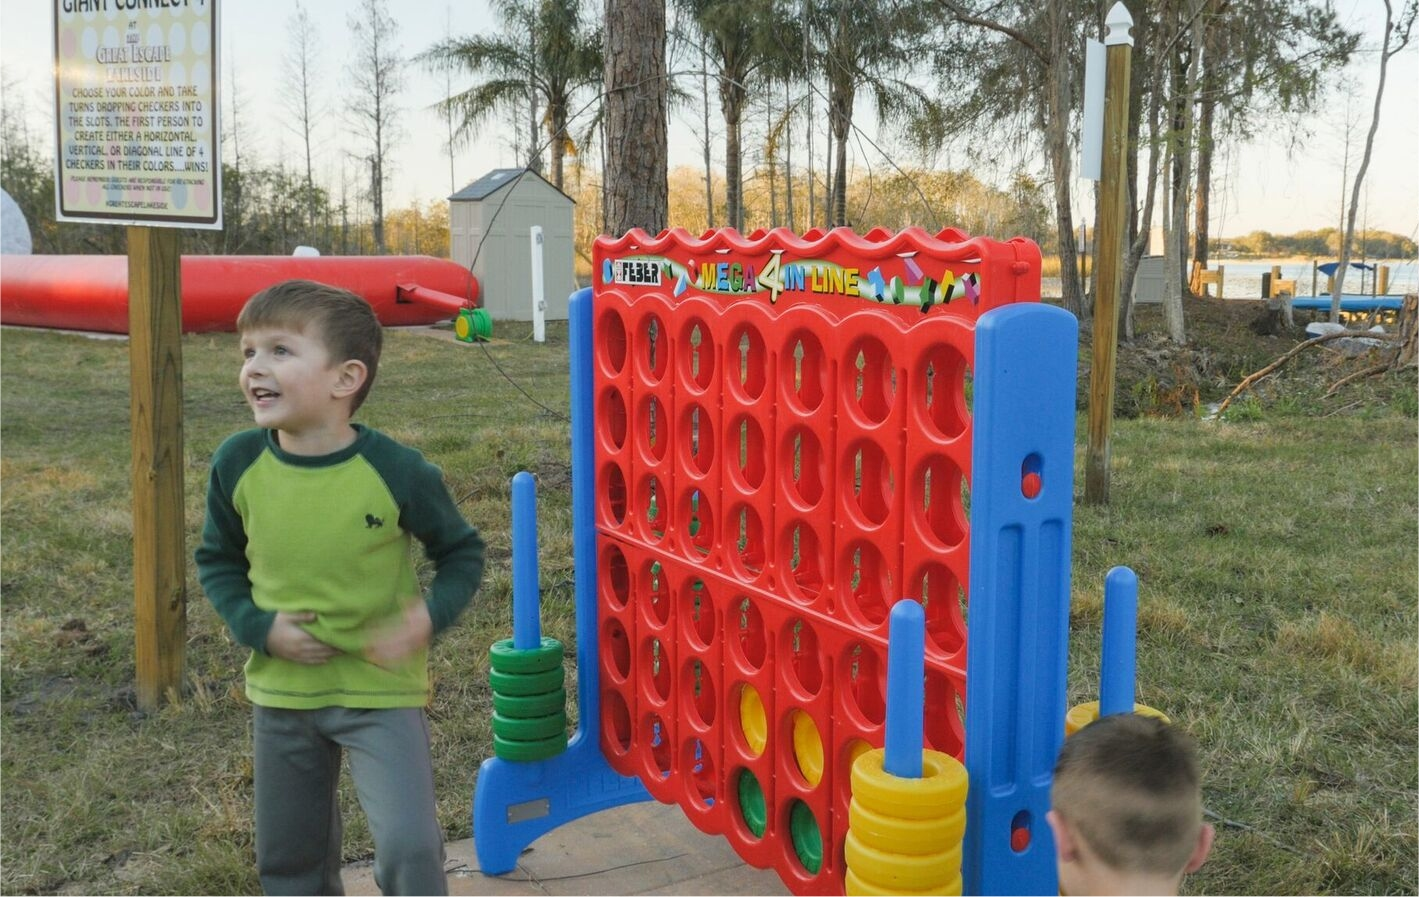 Play Connect 4 Outdoors at The Great Escape Lakeside Vacation Rental Home near Orlando, FL and Walt Disney World